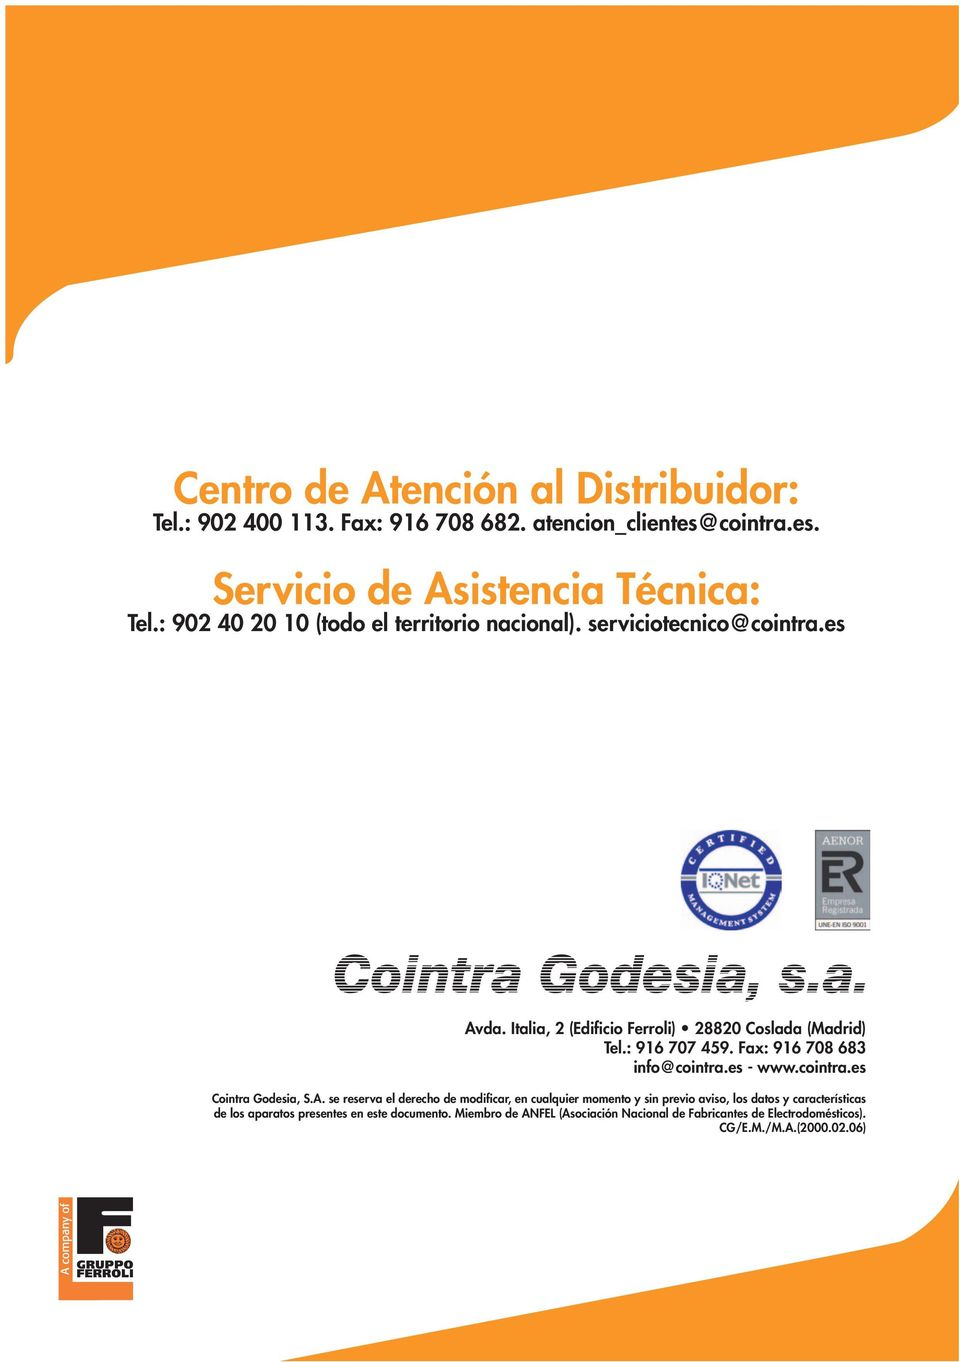 : 916 707 459. Fax: 916 708 683 info@cointra.es - www.cointra.es Cointra Godesia, S.A.